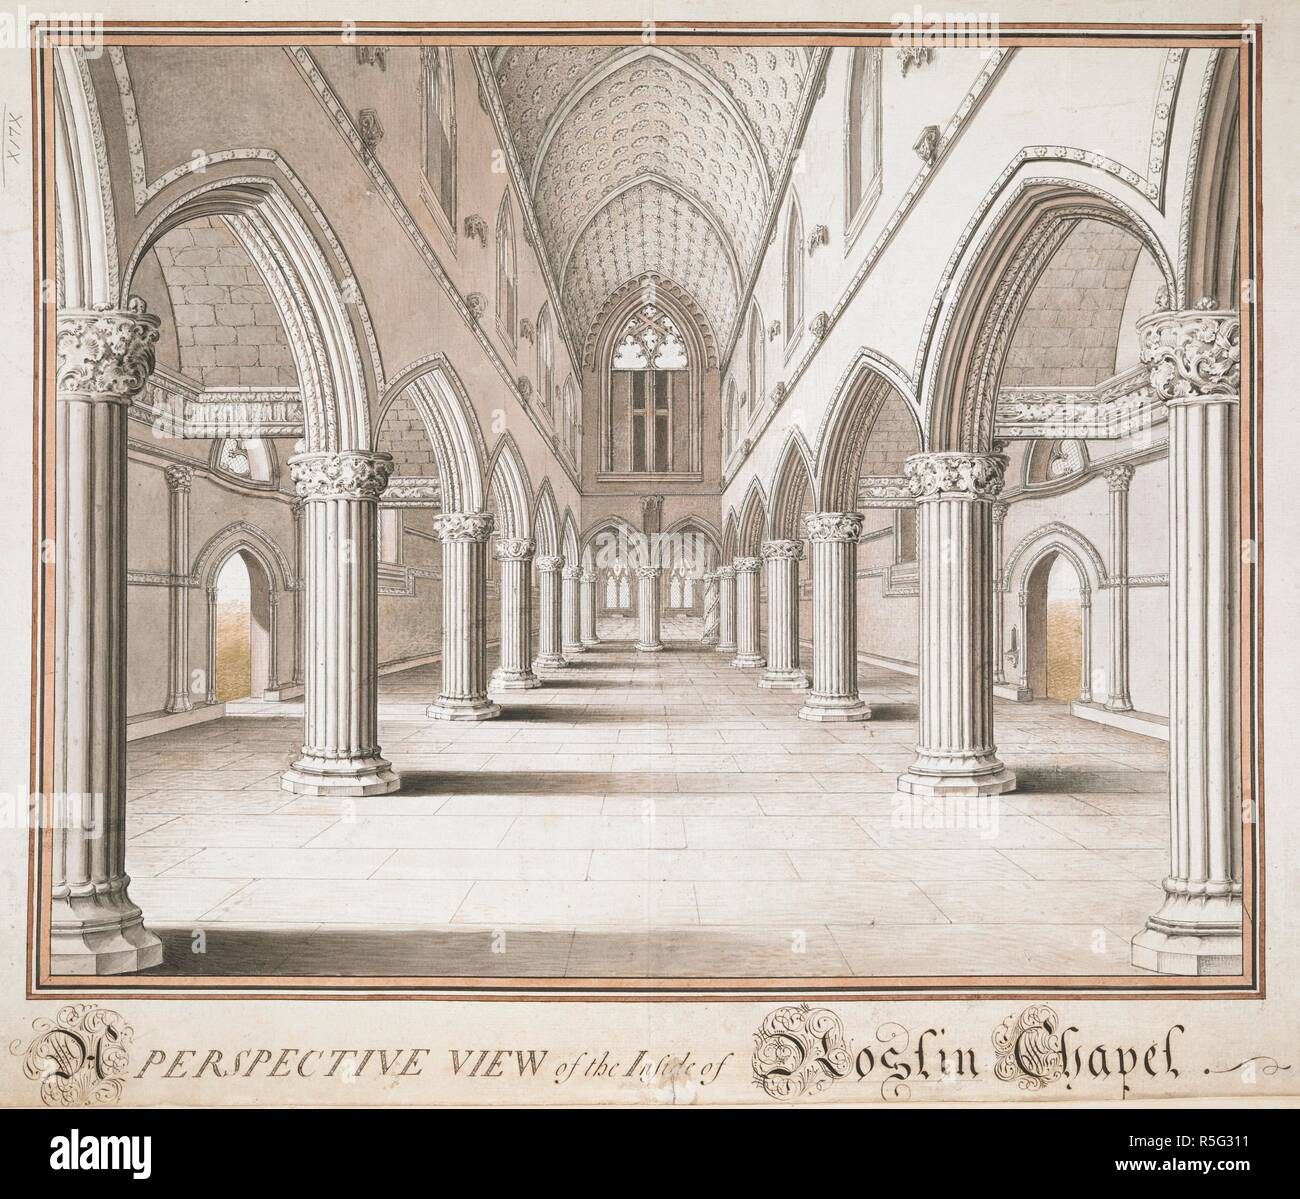 A view of the interior of Roslin Chapel, looking east. A view, in Indian ink, of the interior of Roslin Chapel, looking east. ca. 1761. Source: Maps K.Top.49.79.g. Language: English. Stock Photo